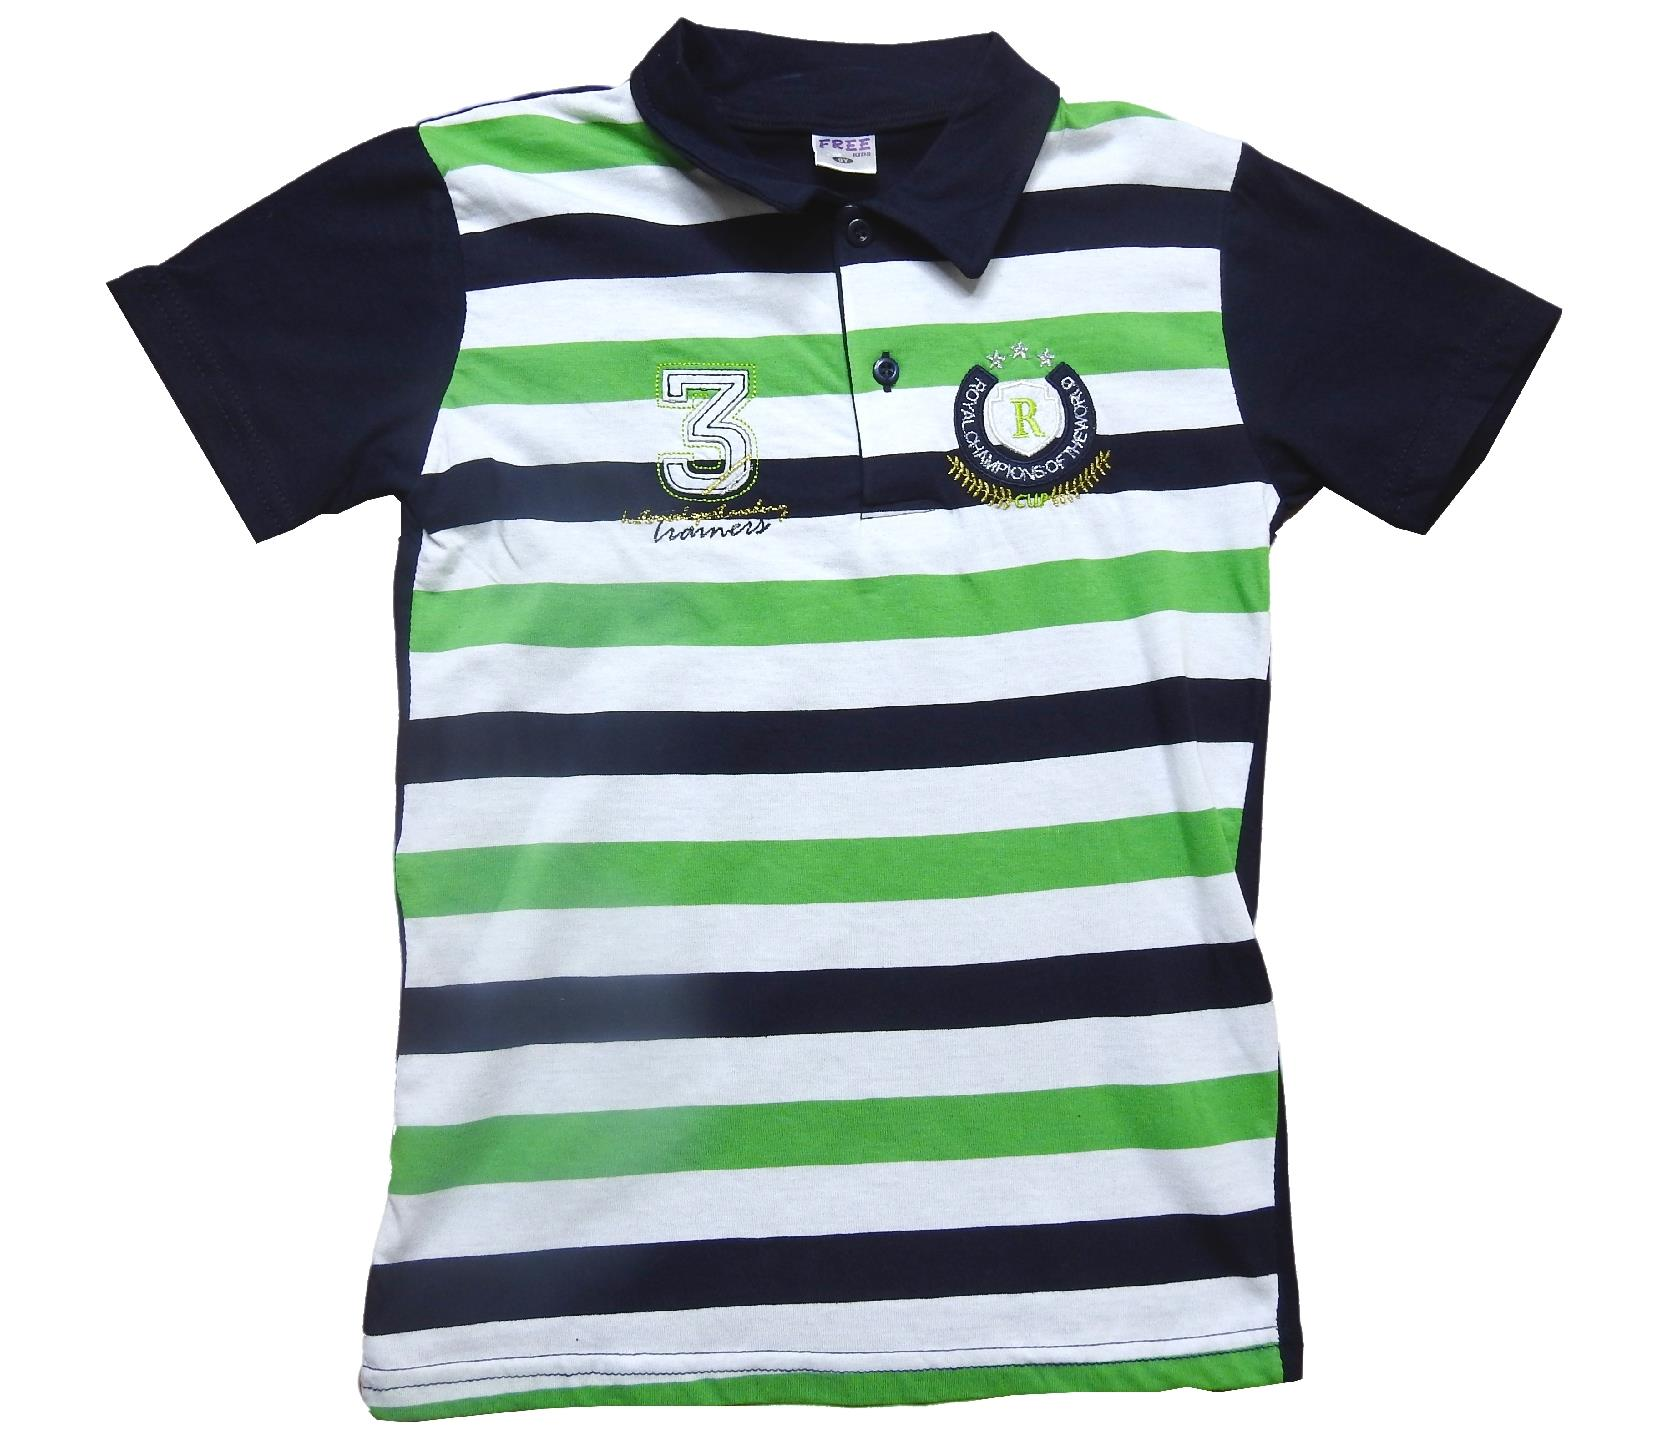 699 Wholesale striped designed polo t-shirt for boy children clothes (9-10-11-12 age)